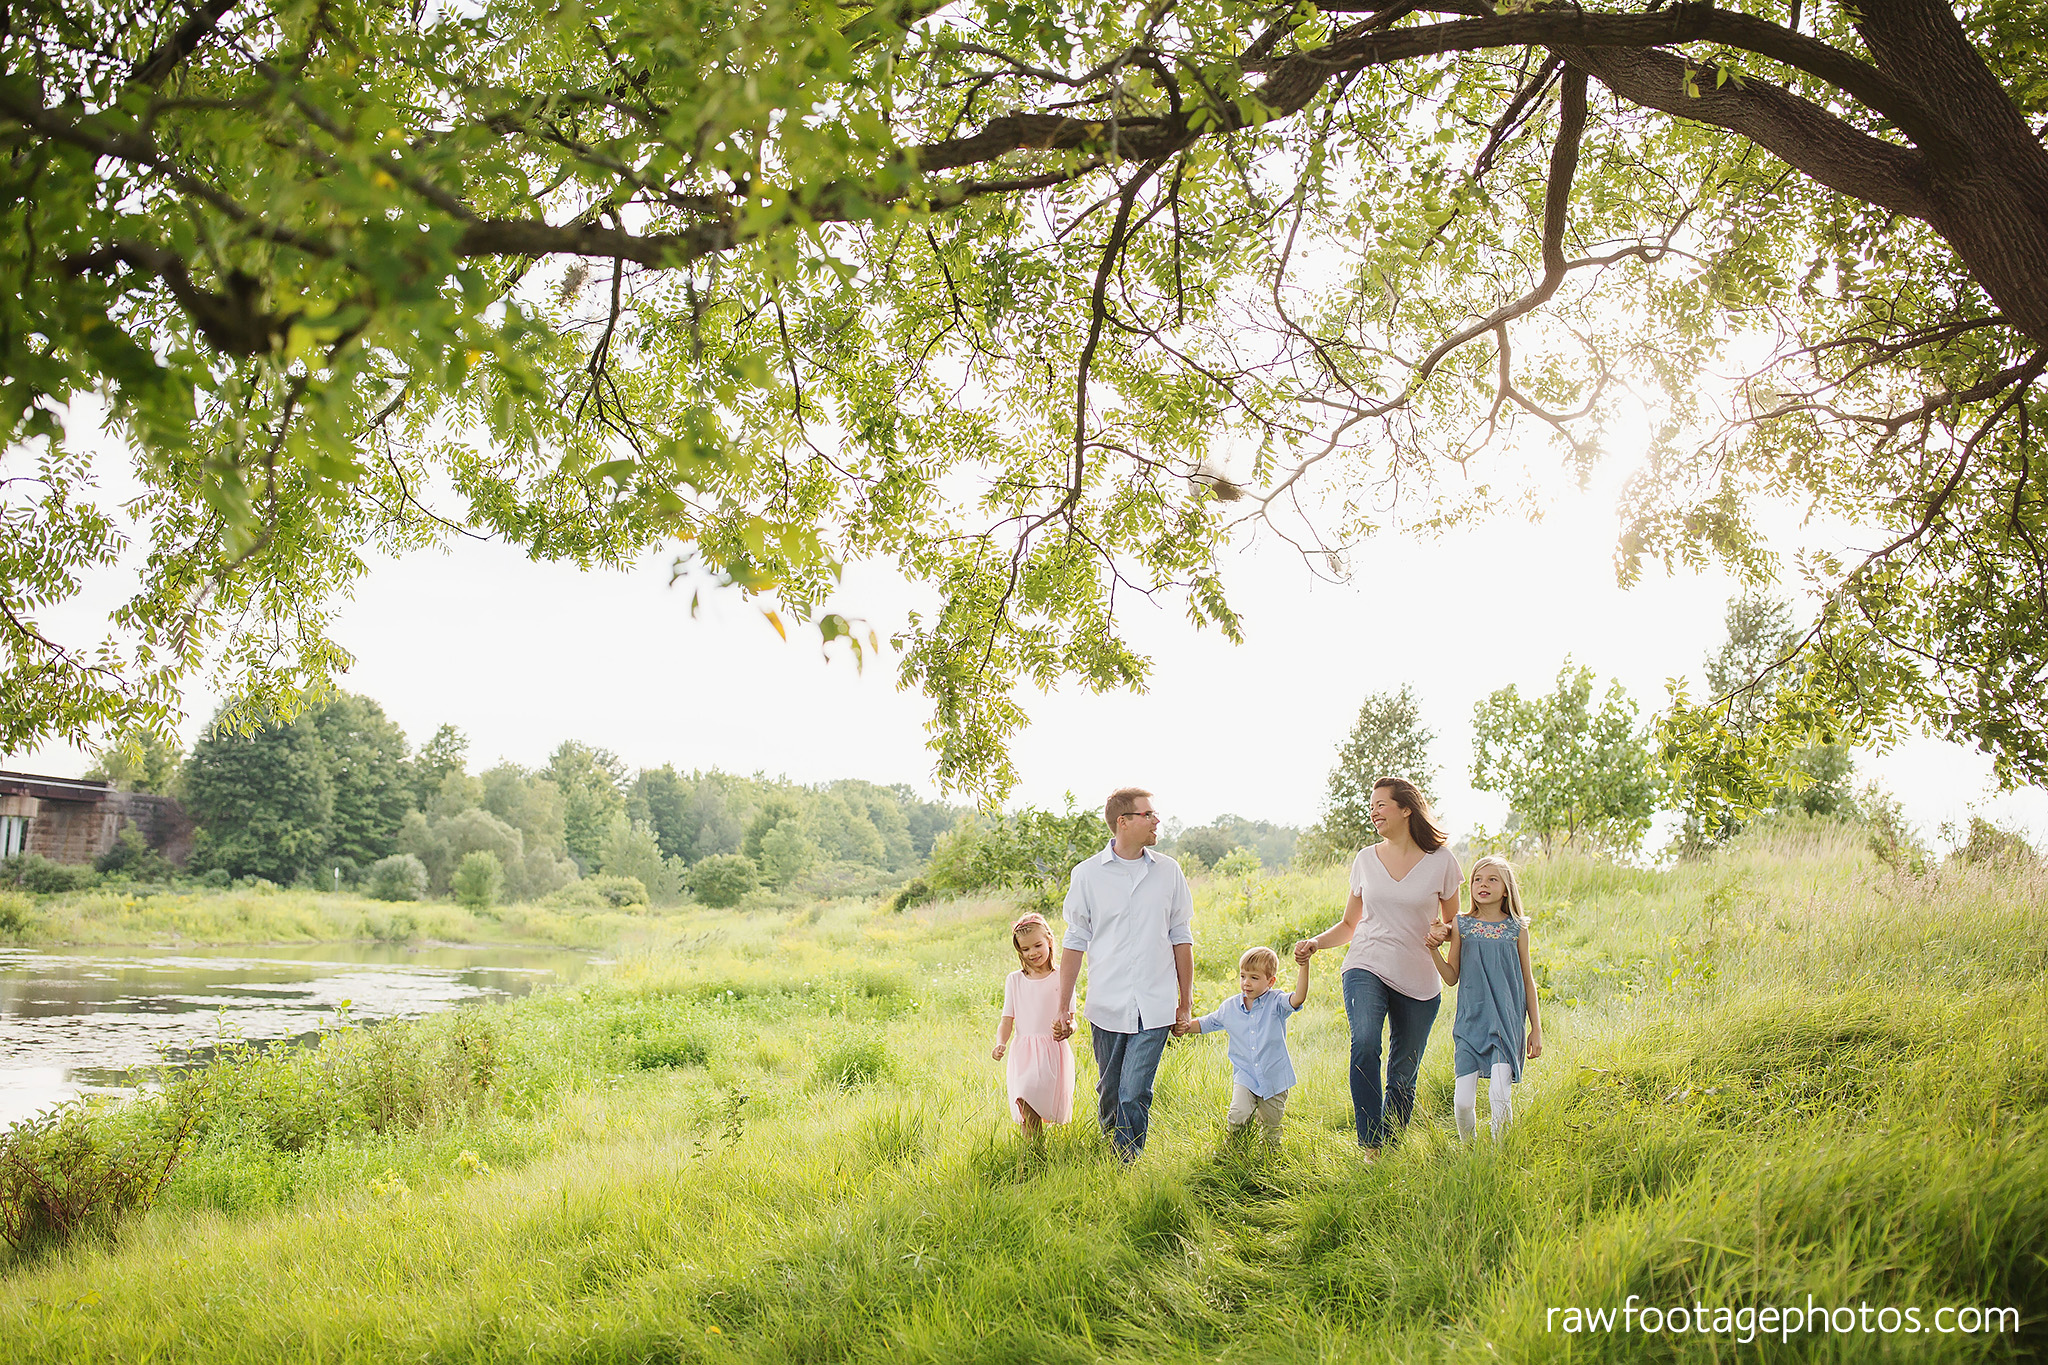 london_ontario_family_photography-lifestyle_photography-maternity_photos-raw_footage_photography-best_of_2018022.jpg